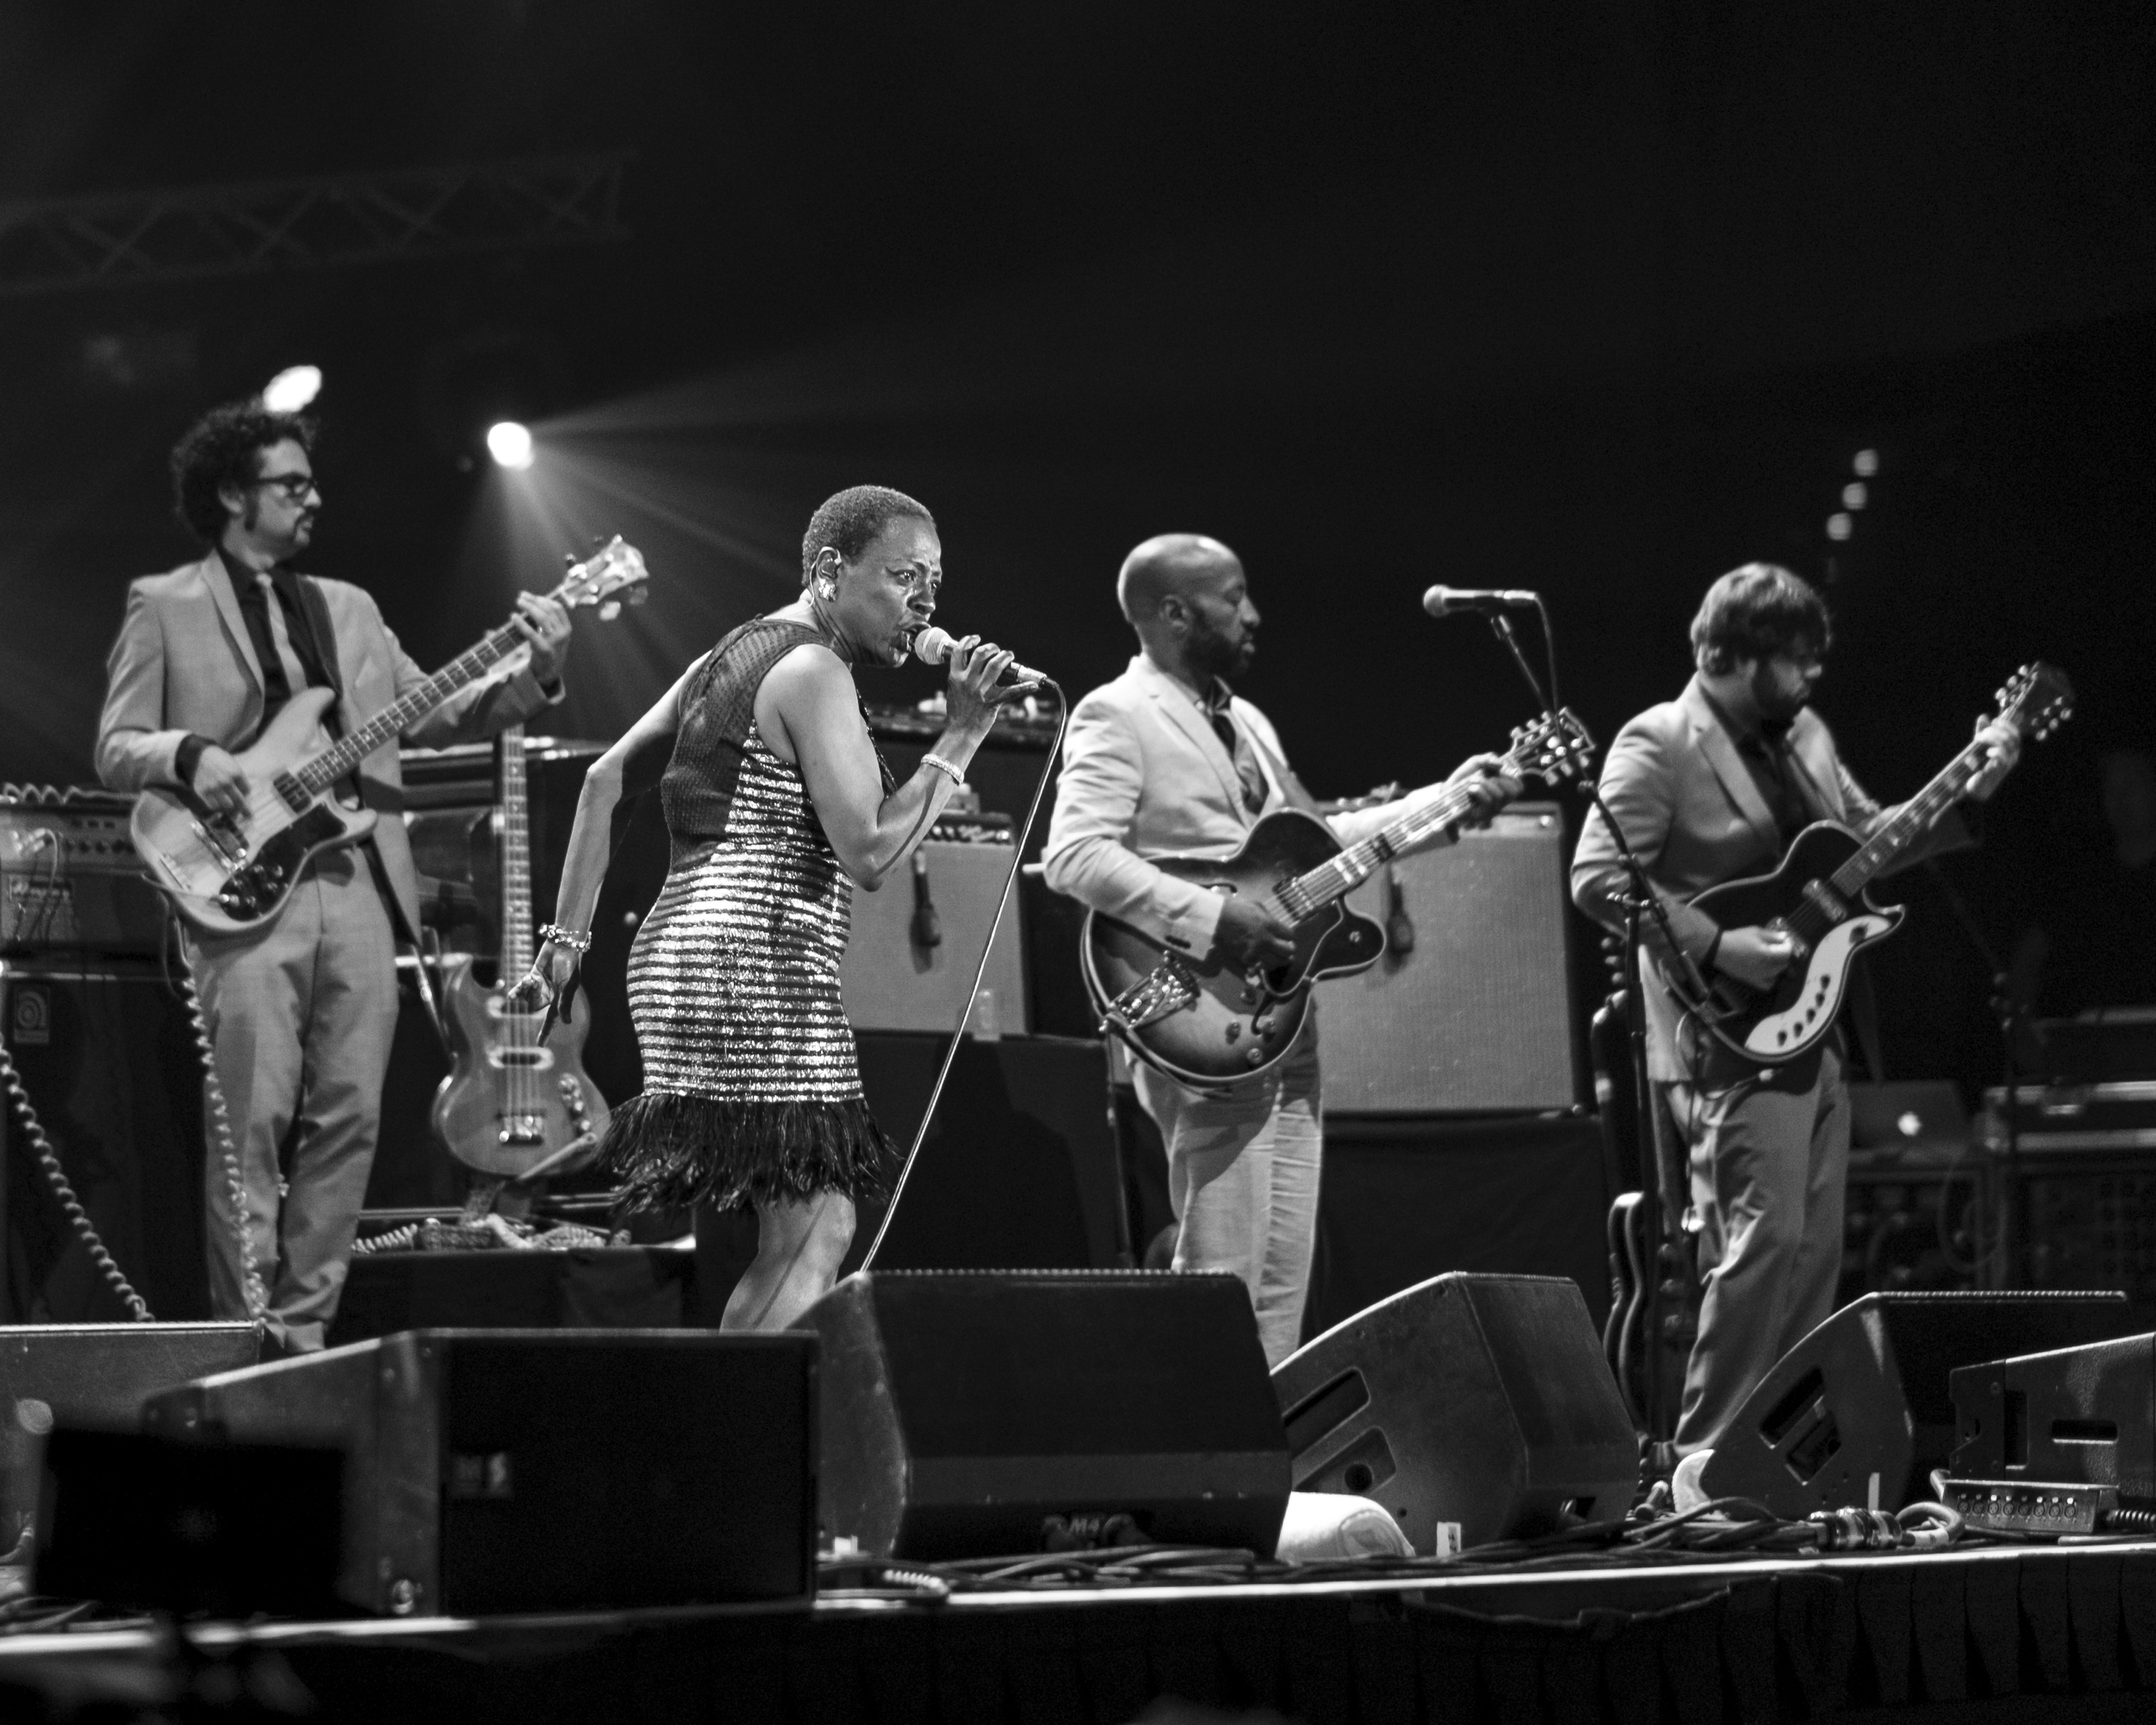 The DapKings at North Sea Jazz festival 2014